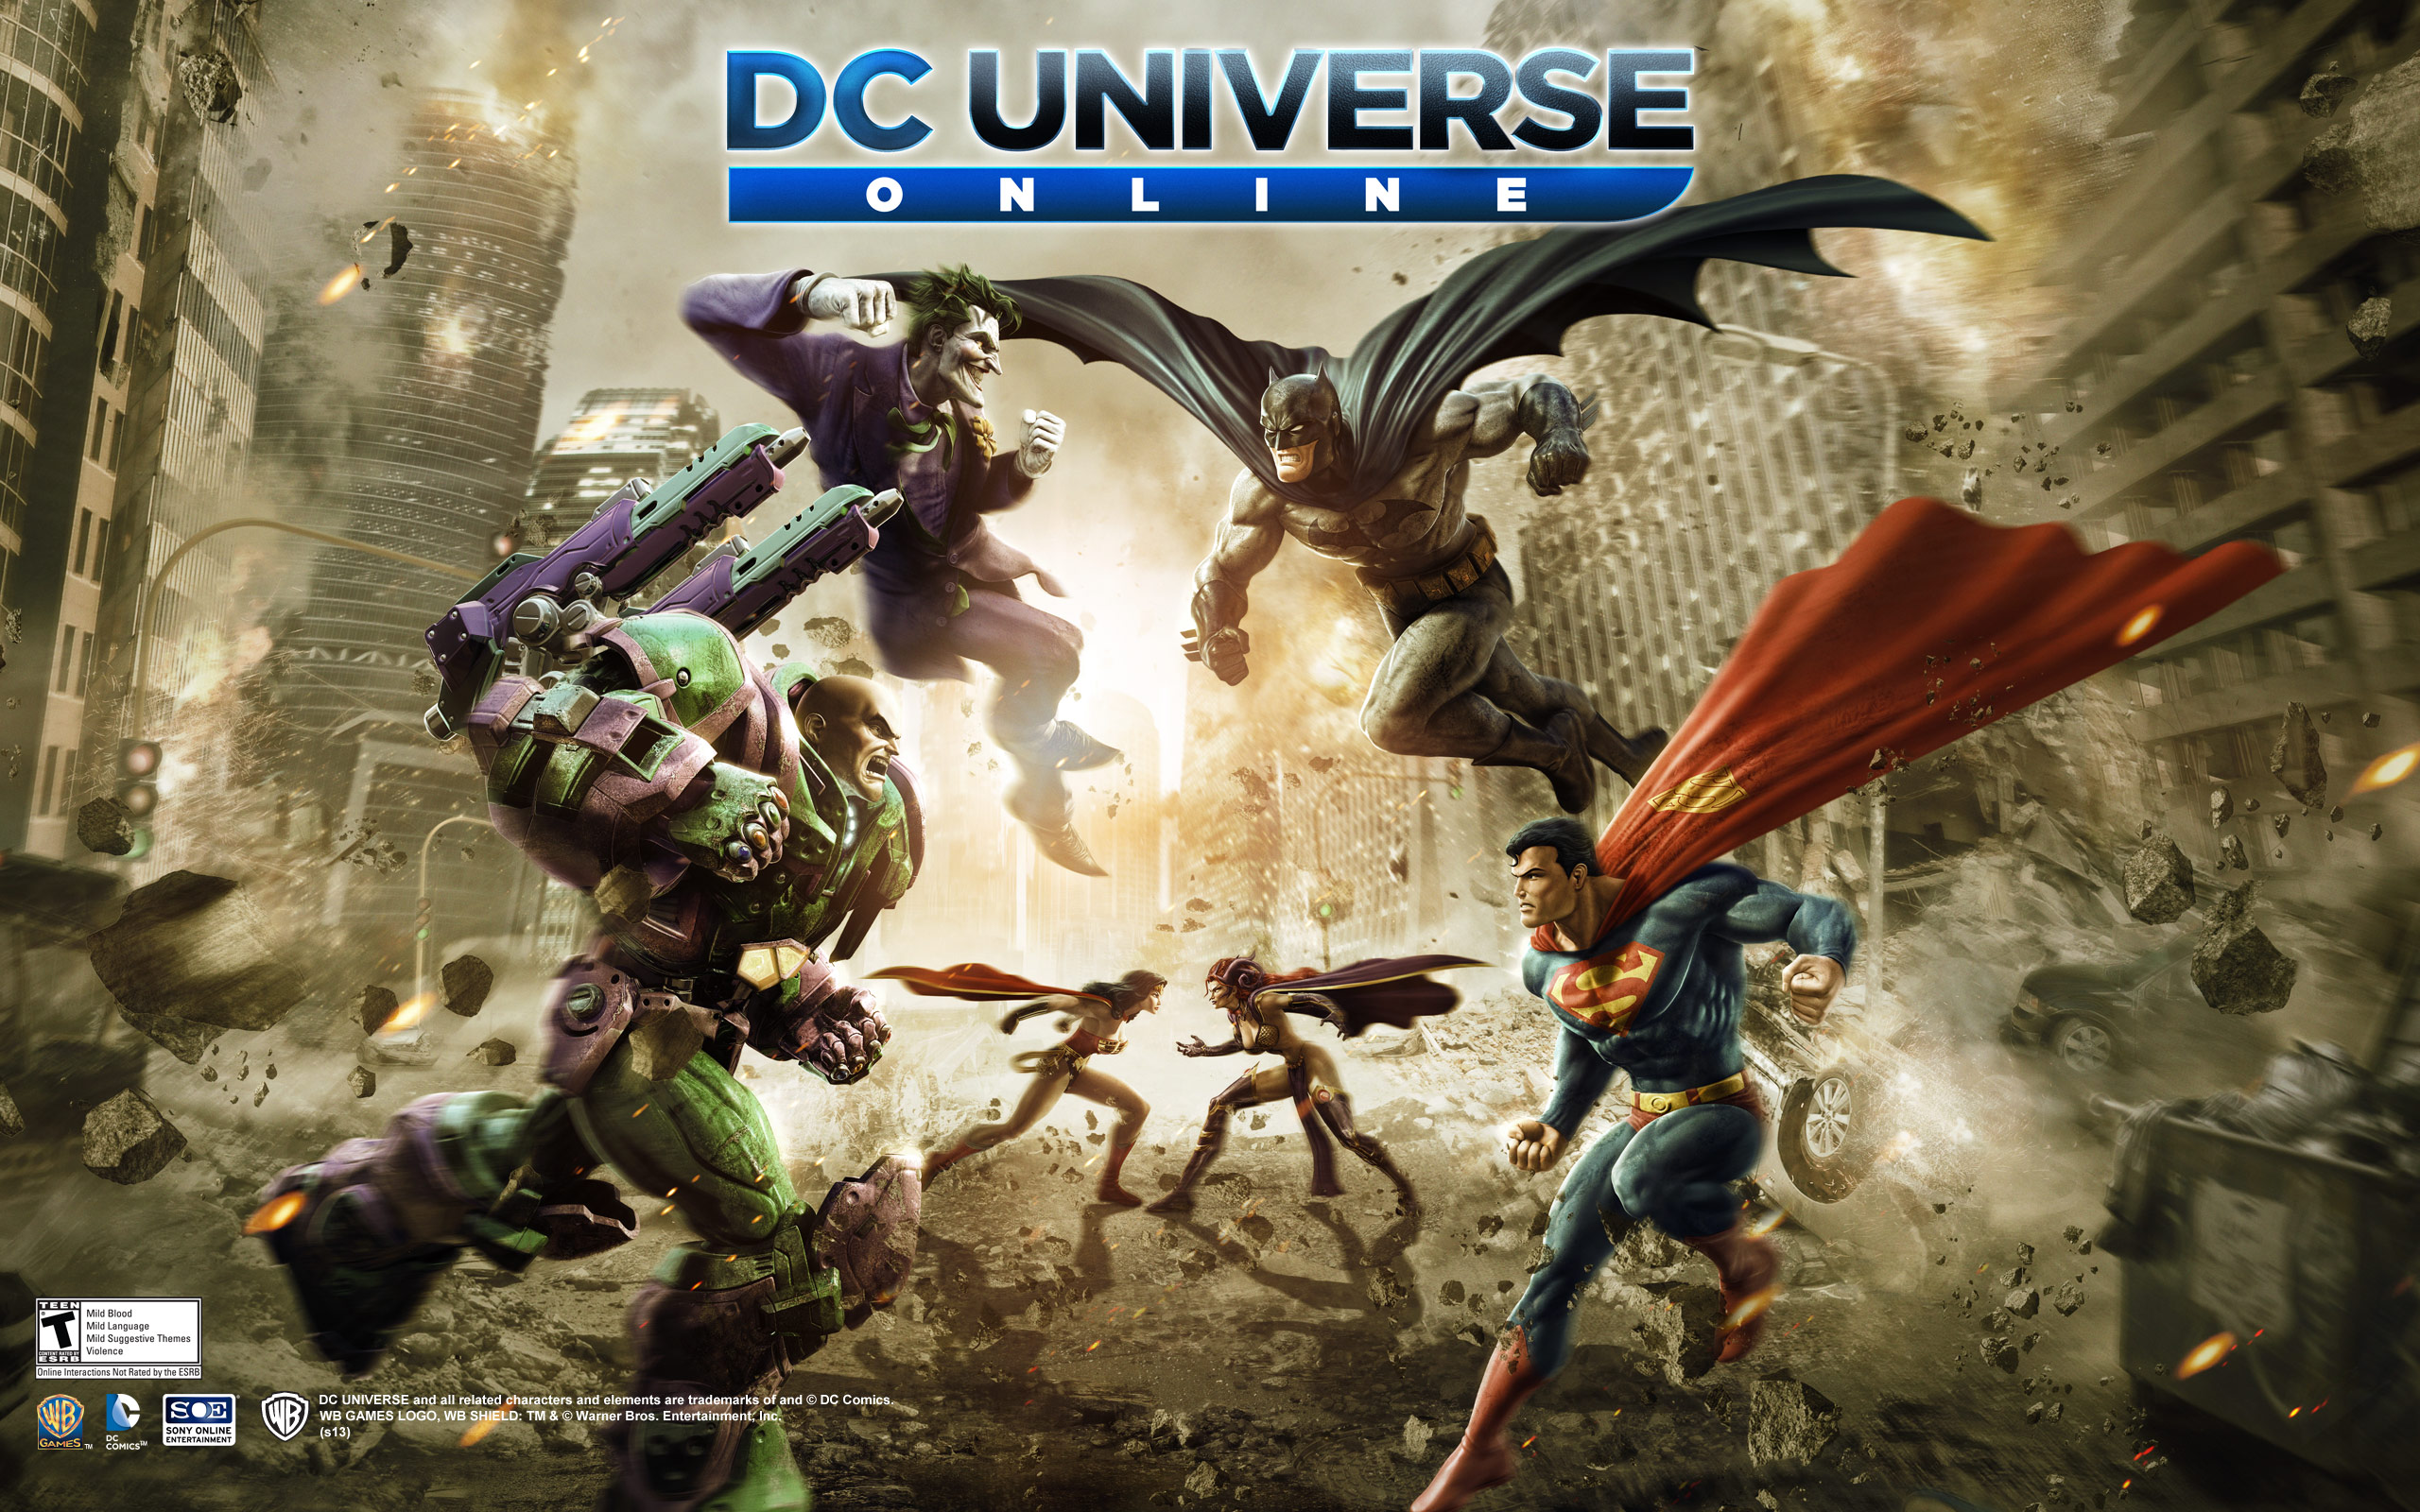 HD Wallpapers DC Universe Online